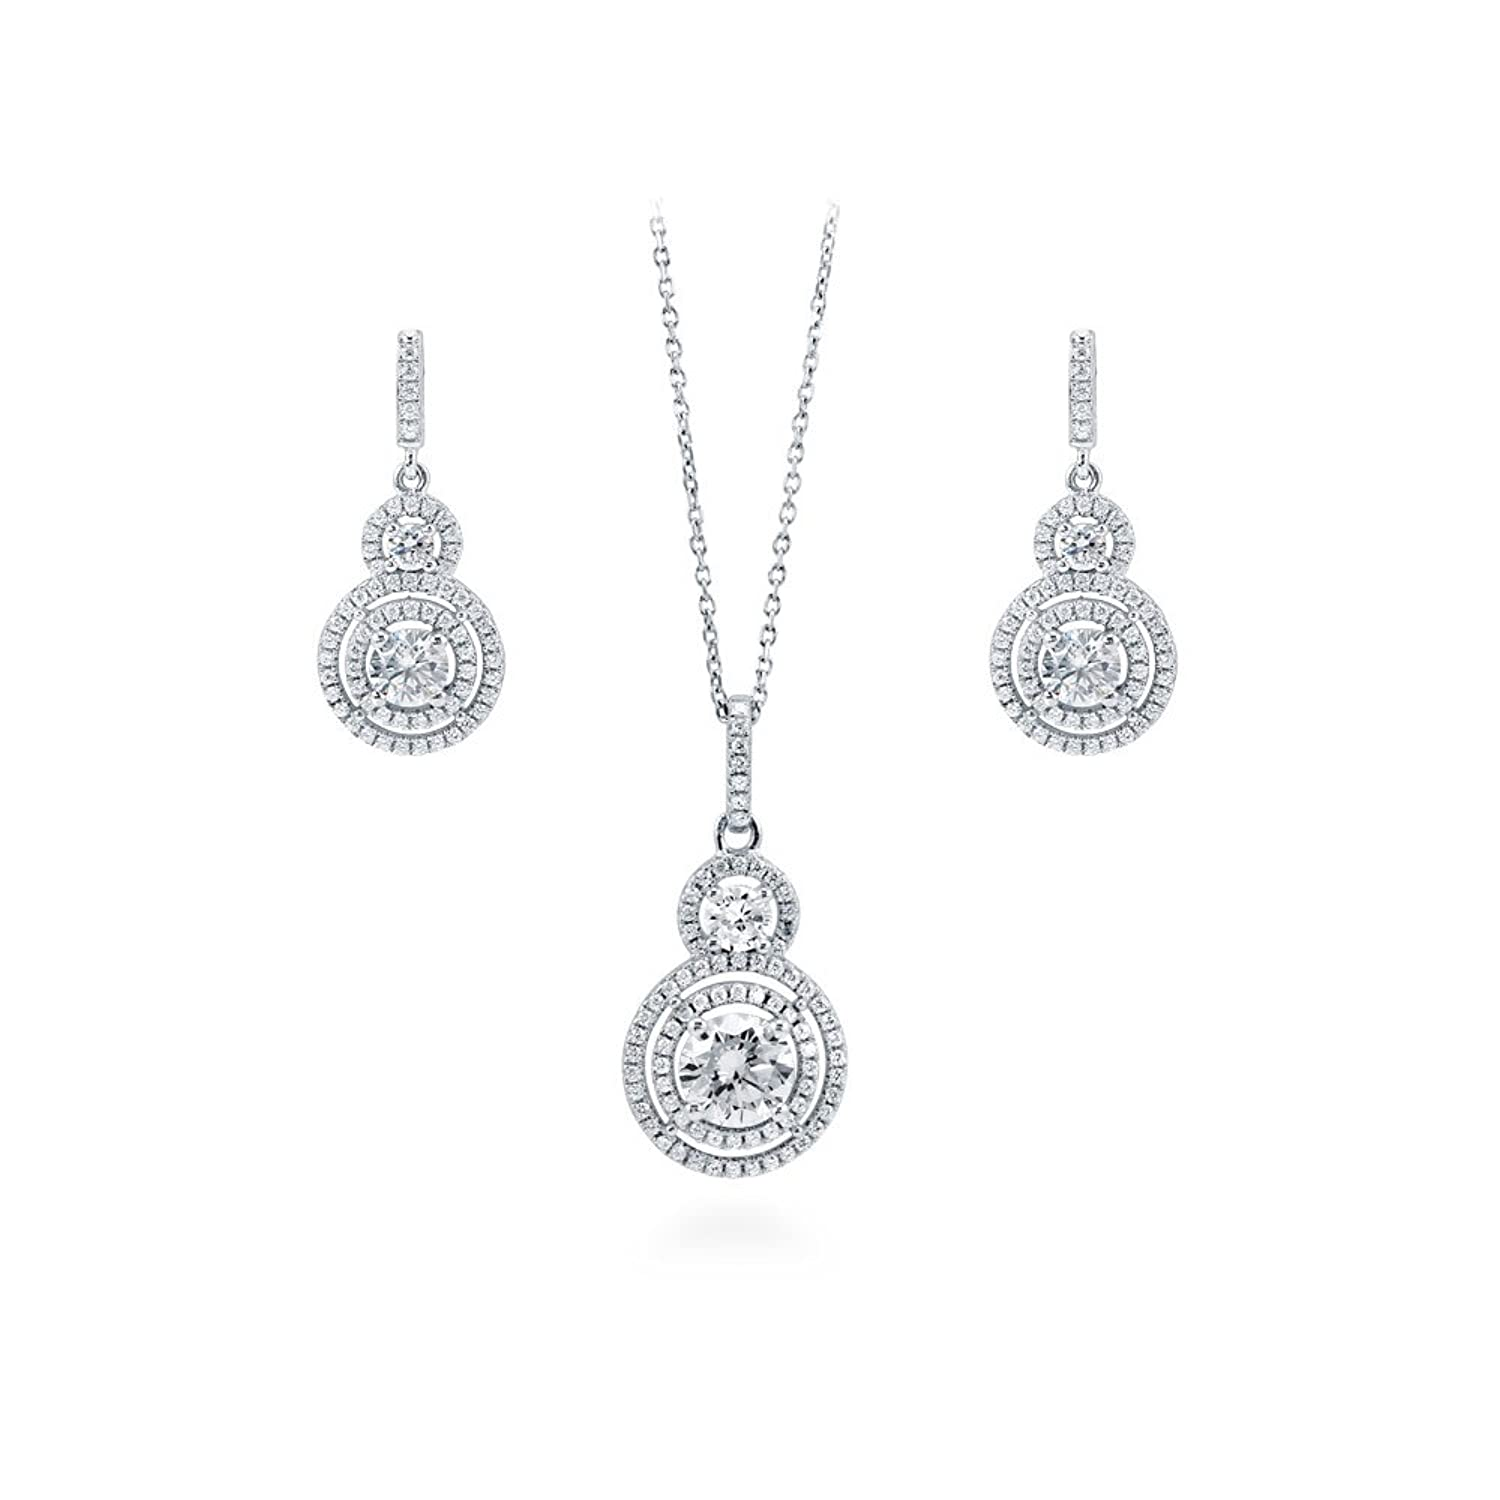 908aabbad6e5 Halo Earrings Plated Sterling Berricle Stud Silver Cut Cz Rhodium Cubic  Zirconia Cushion g6vmI7bfyY